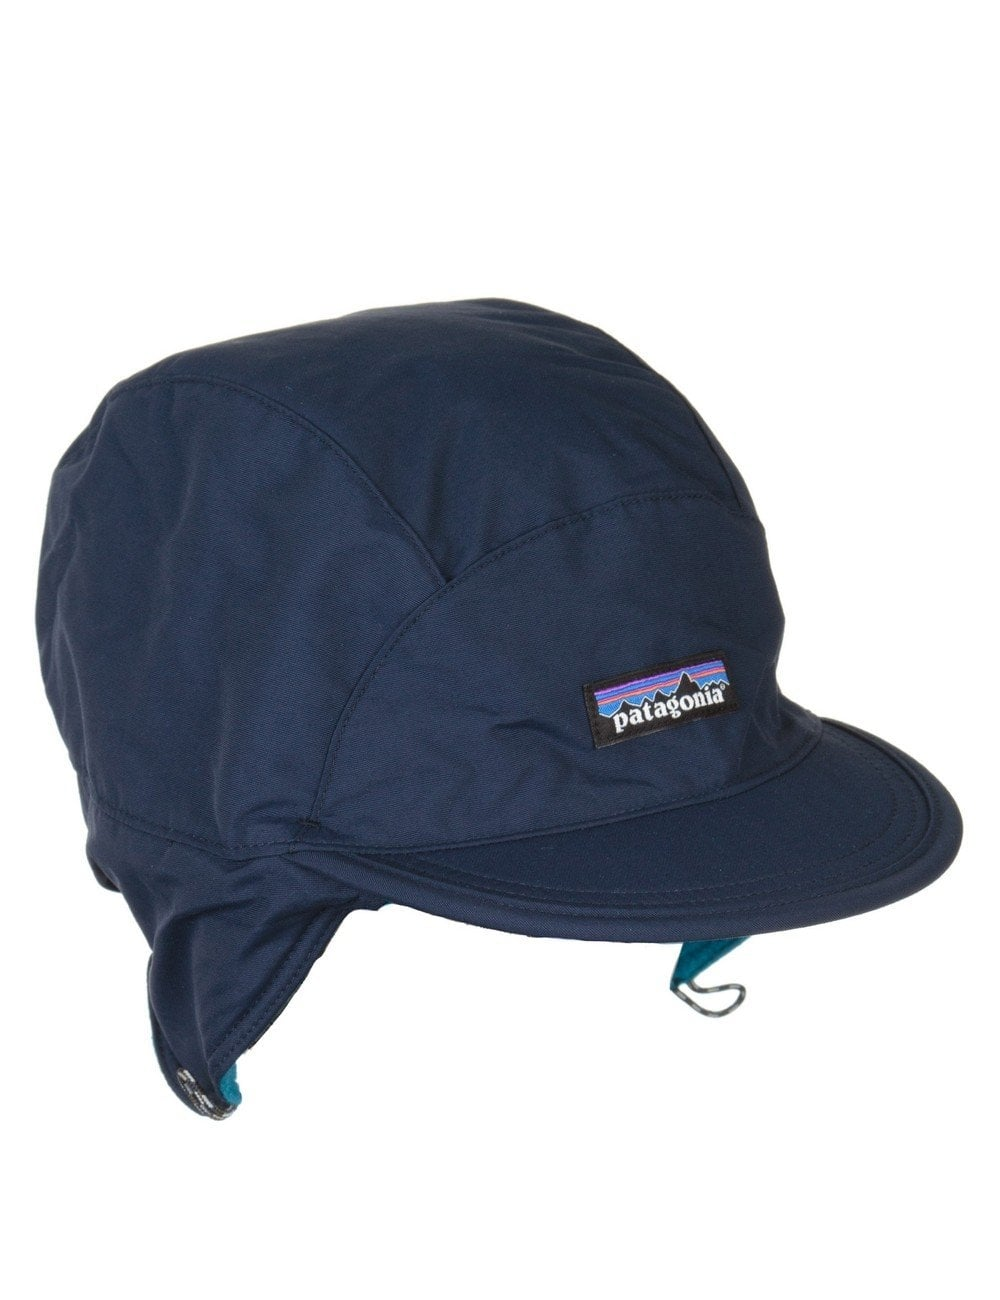 f9389faf4ab Patagonia Shelled Synchilla Duckbill Cap - Navy Blue - Accessories ...